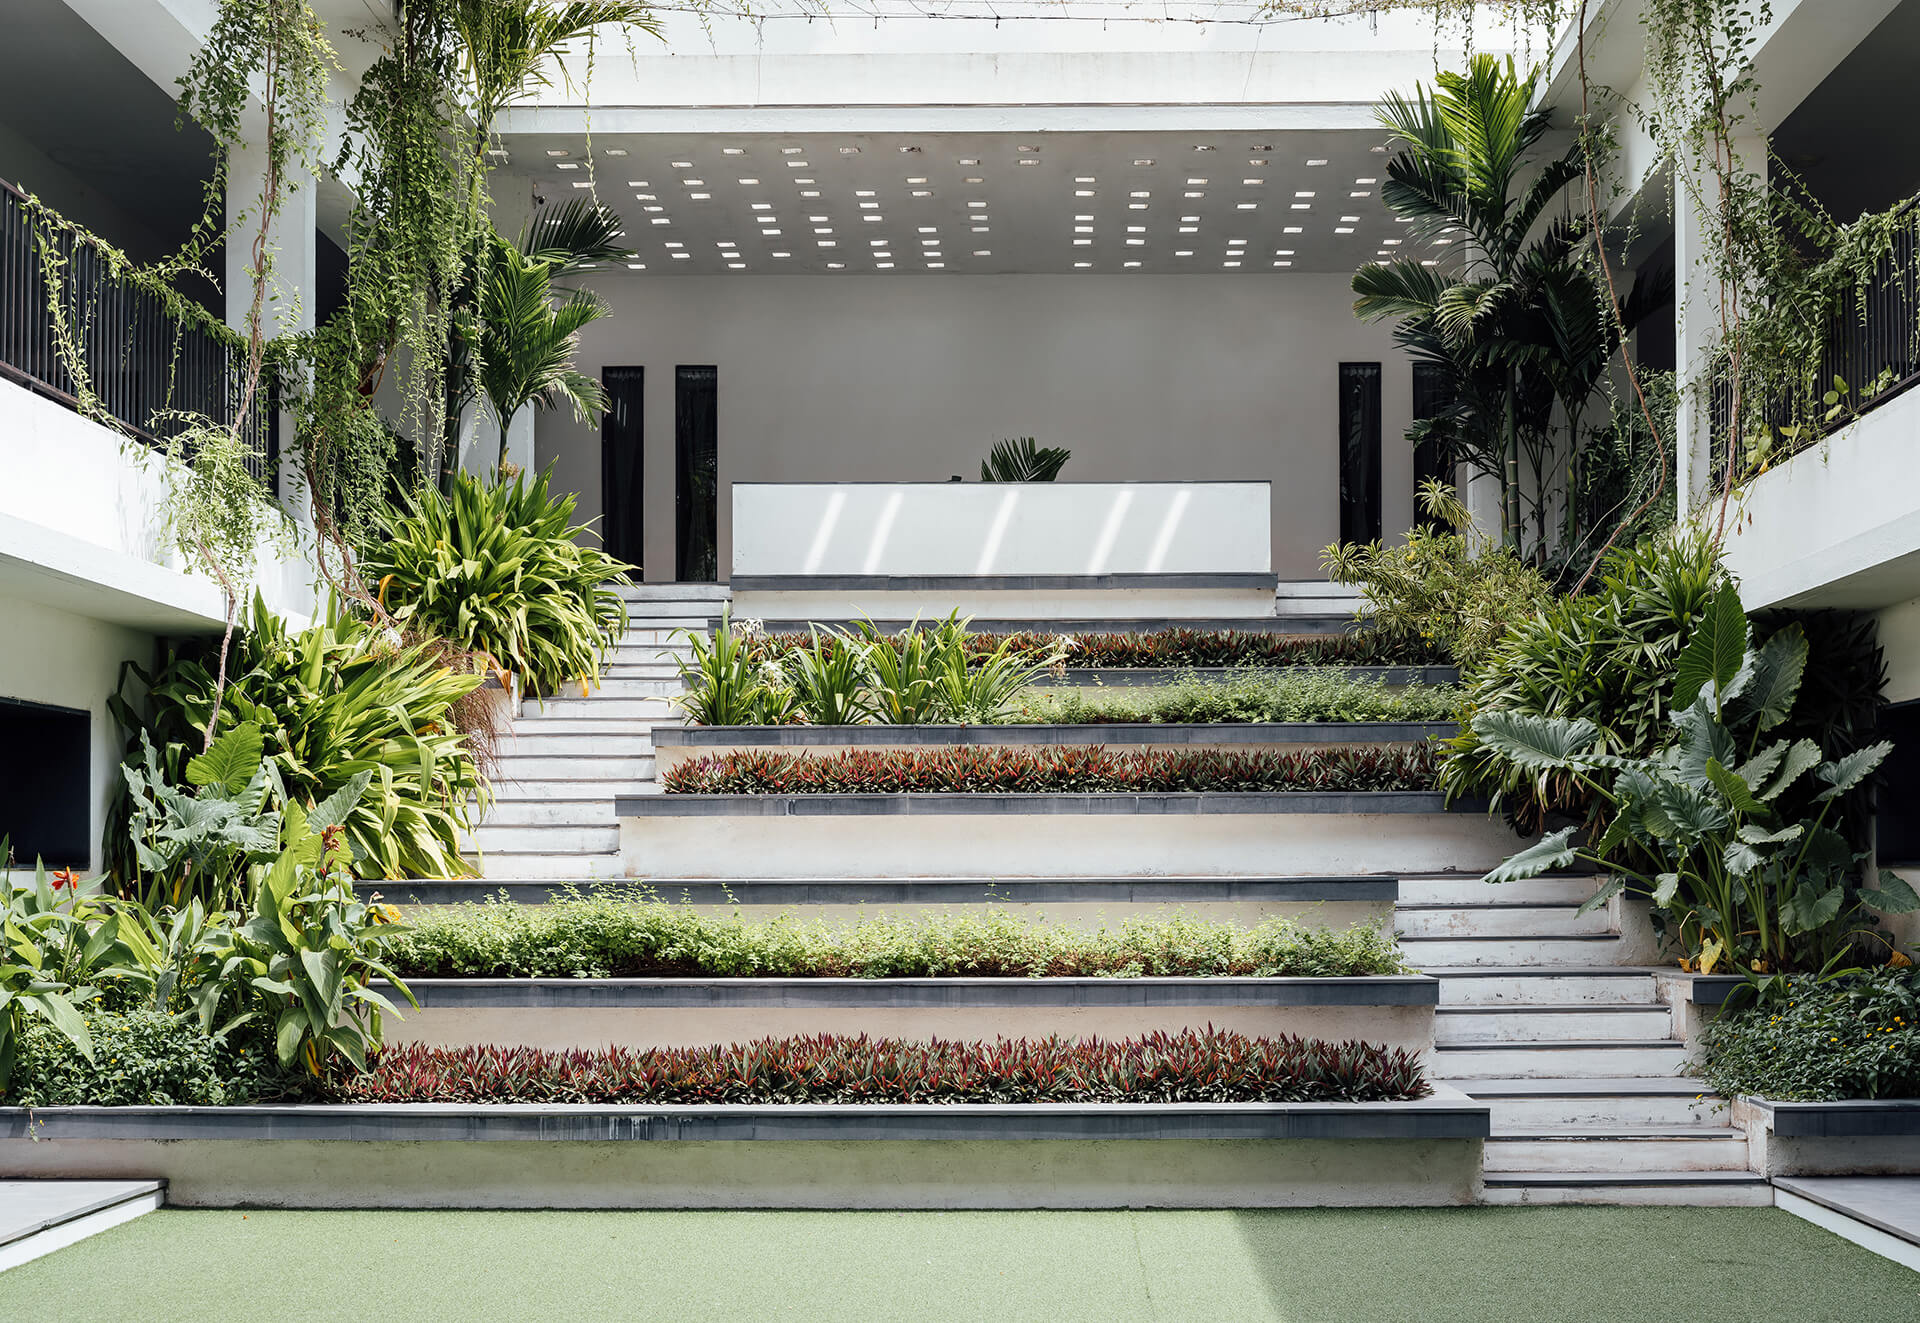 The main courtyard that provides circulation, a gathering space, and also a green relief in all the phases | The Northstar School by Shanmugam Associates | STIRworld